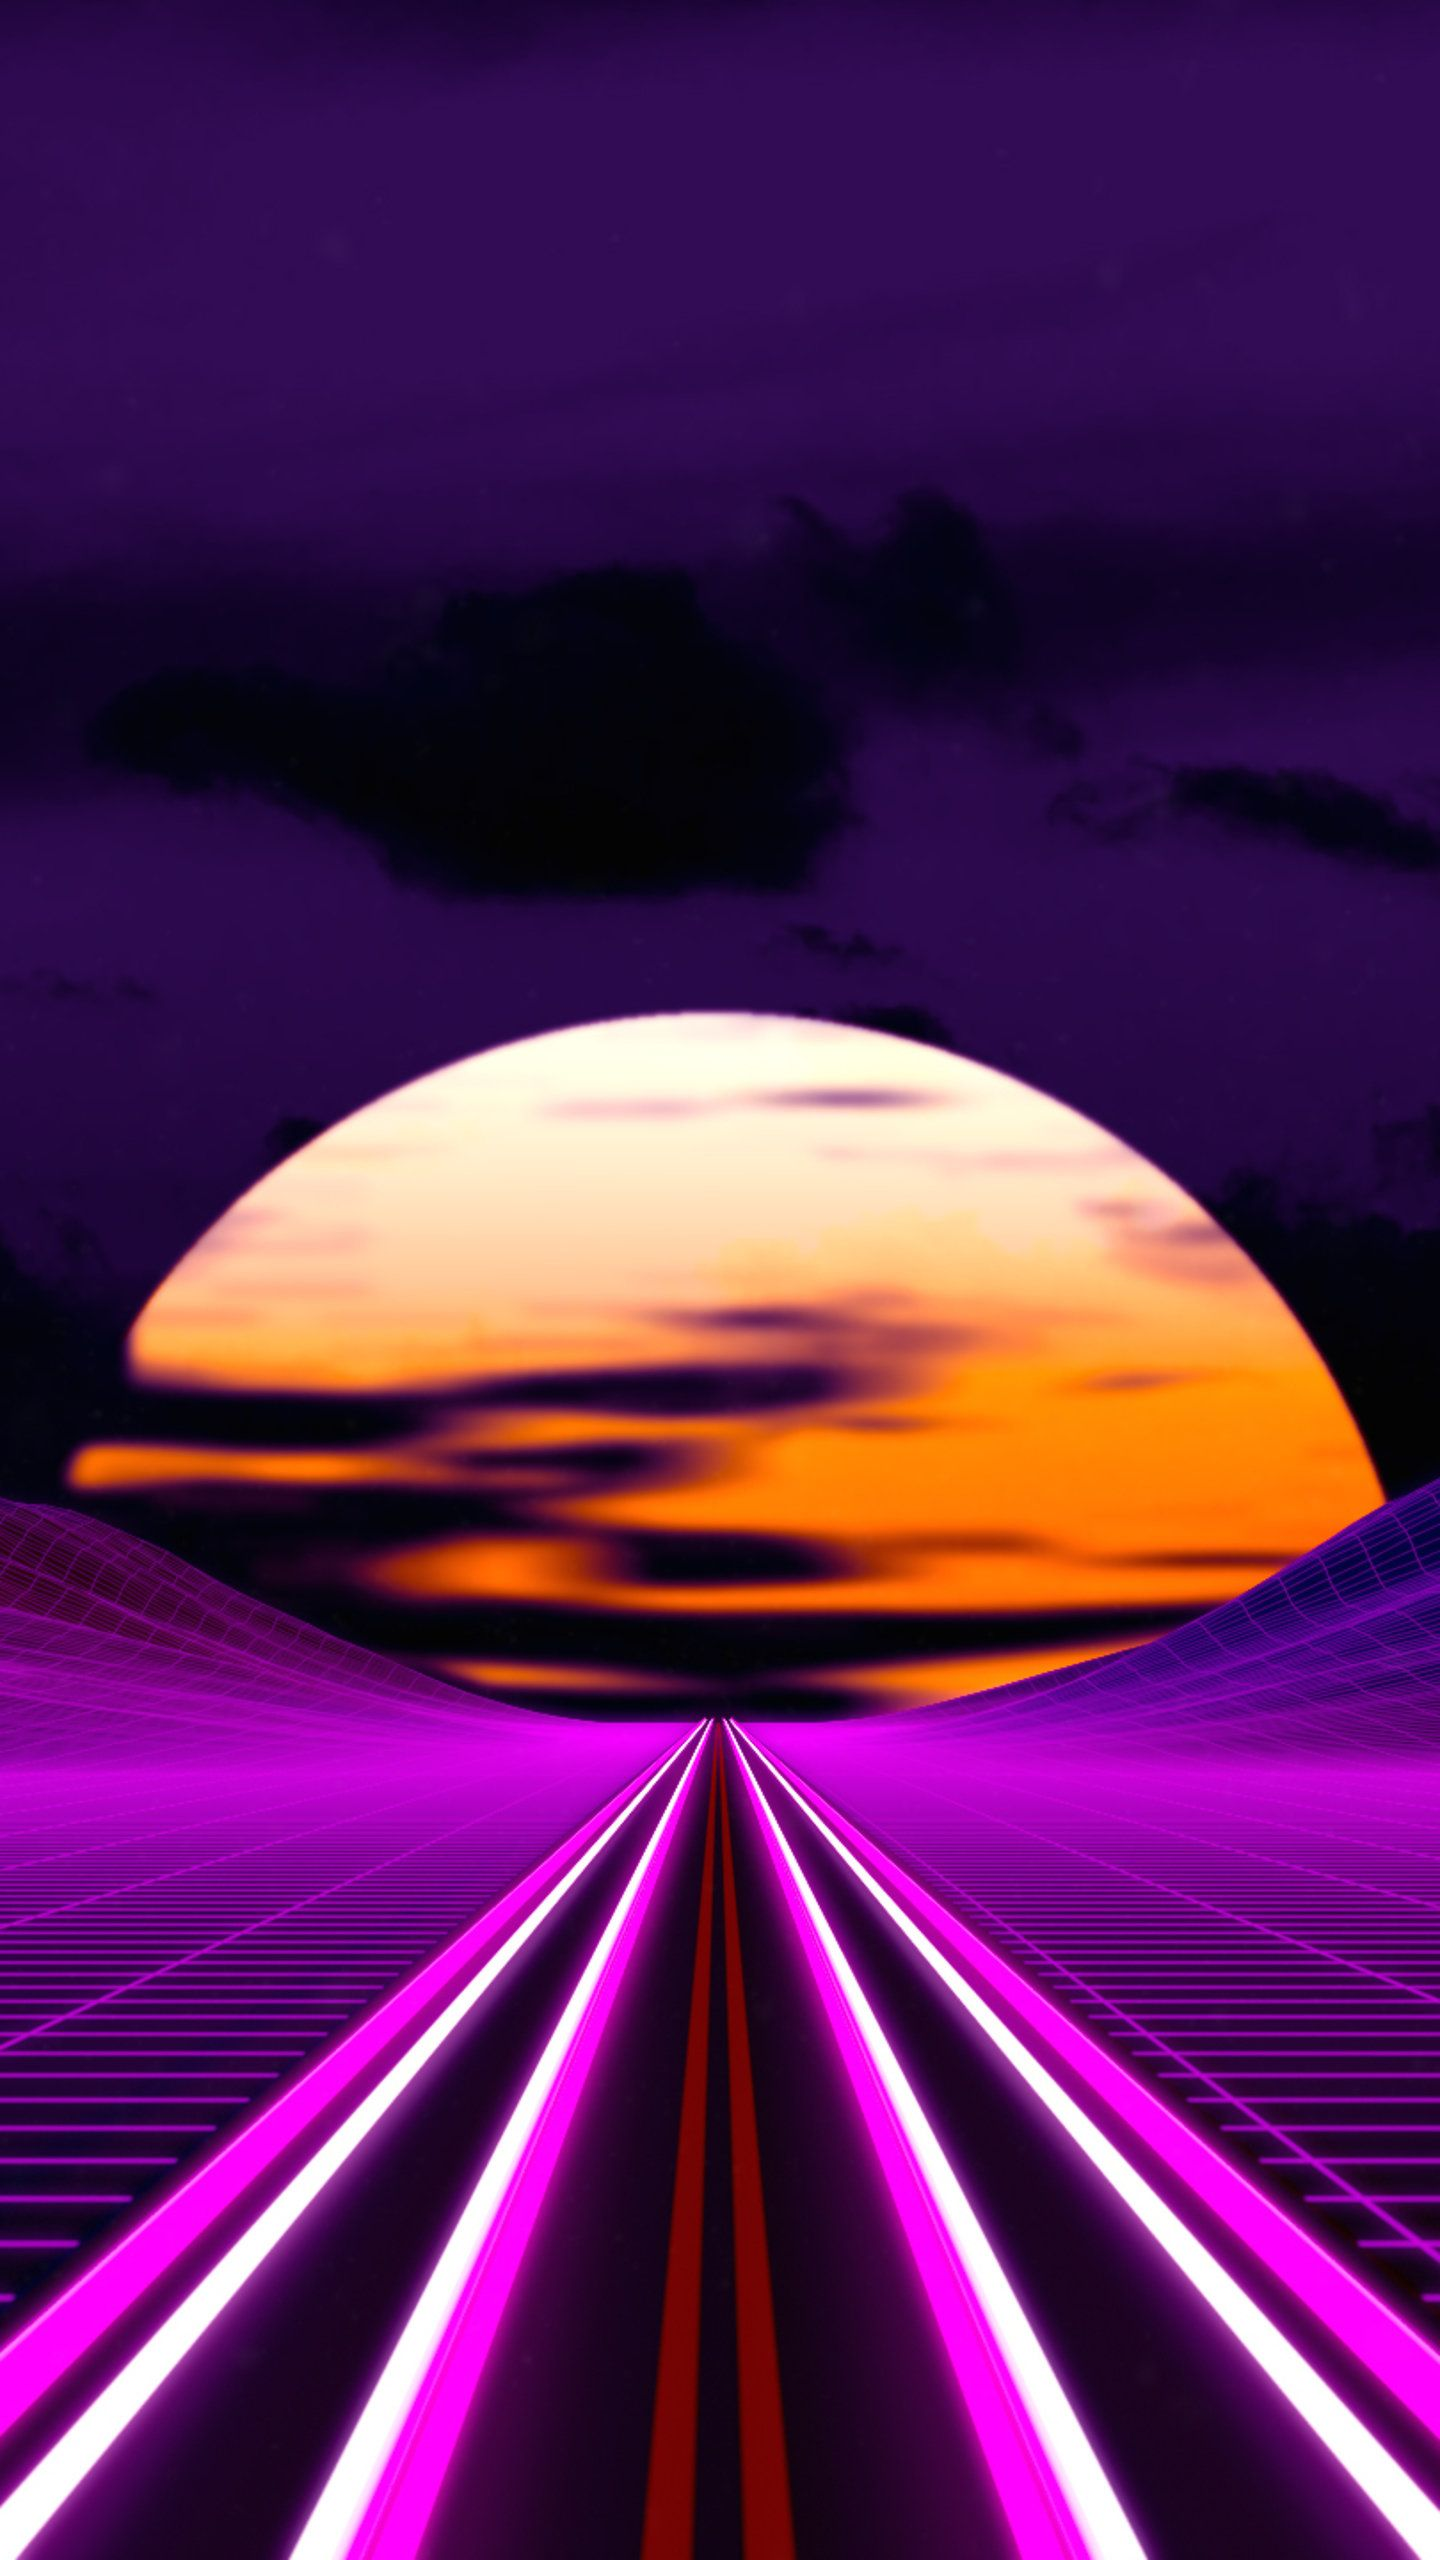 Retro Outrun Road 4k Hd Artist Wallpapers Photos And Pictures Vaporwave Wallpaper Synthwave Wallpaper